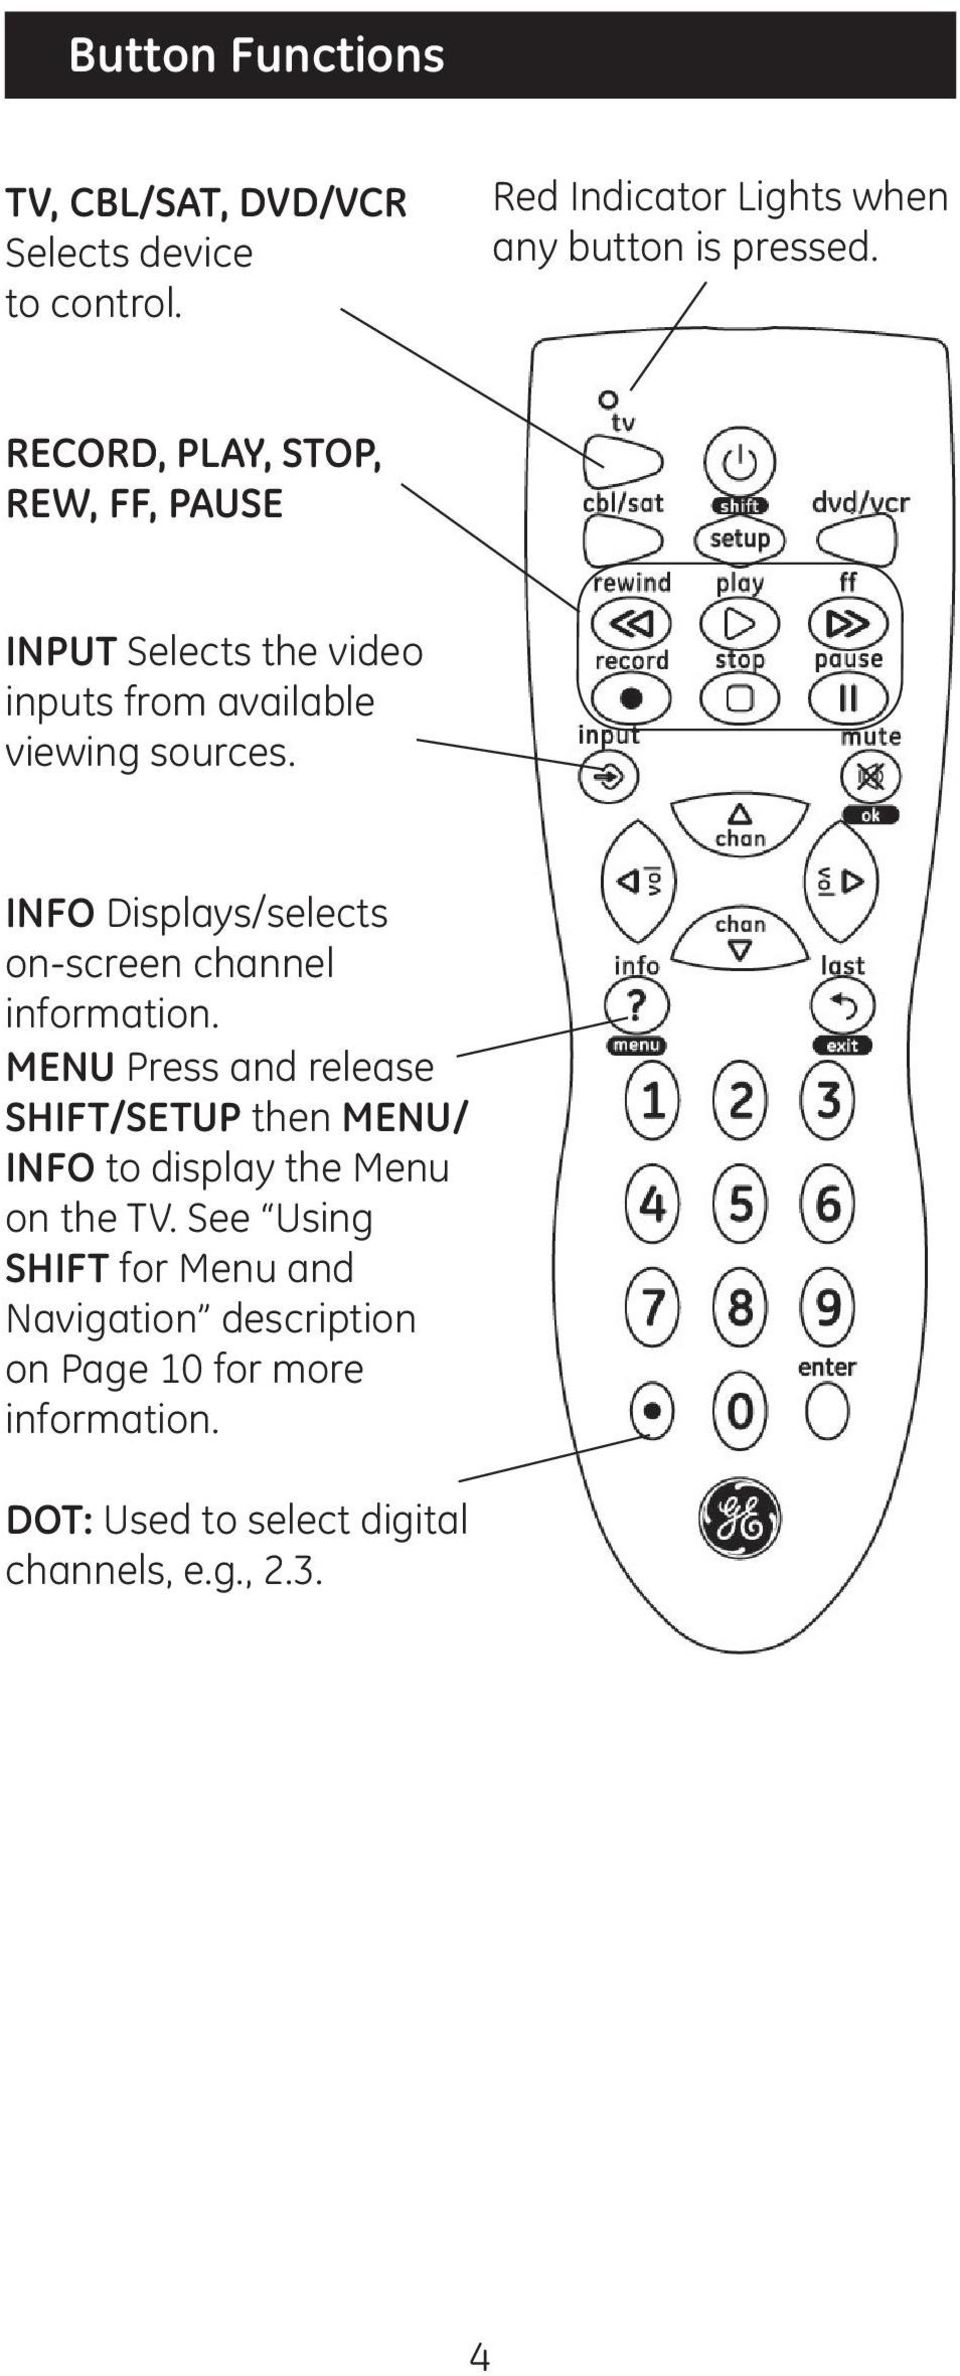 INFO Displays/selects on-screen channel information.